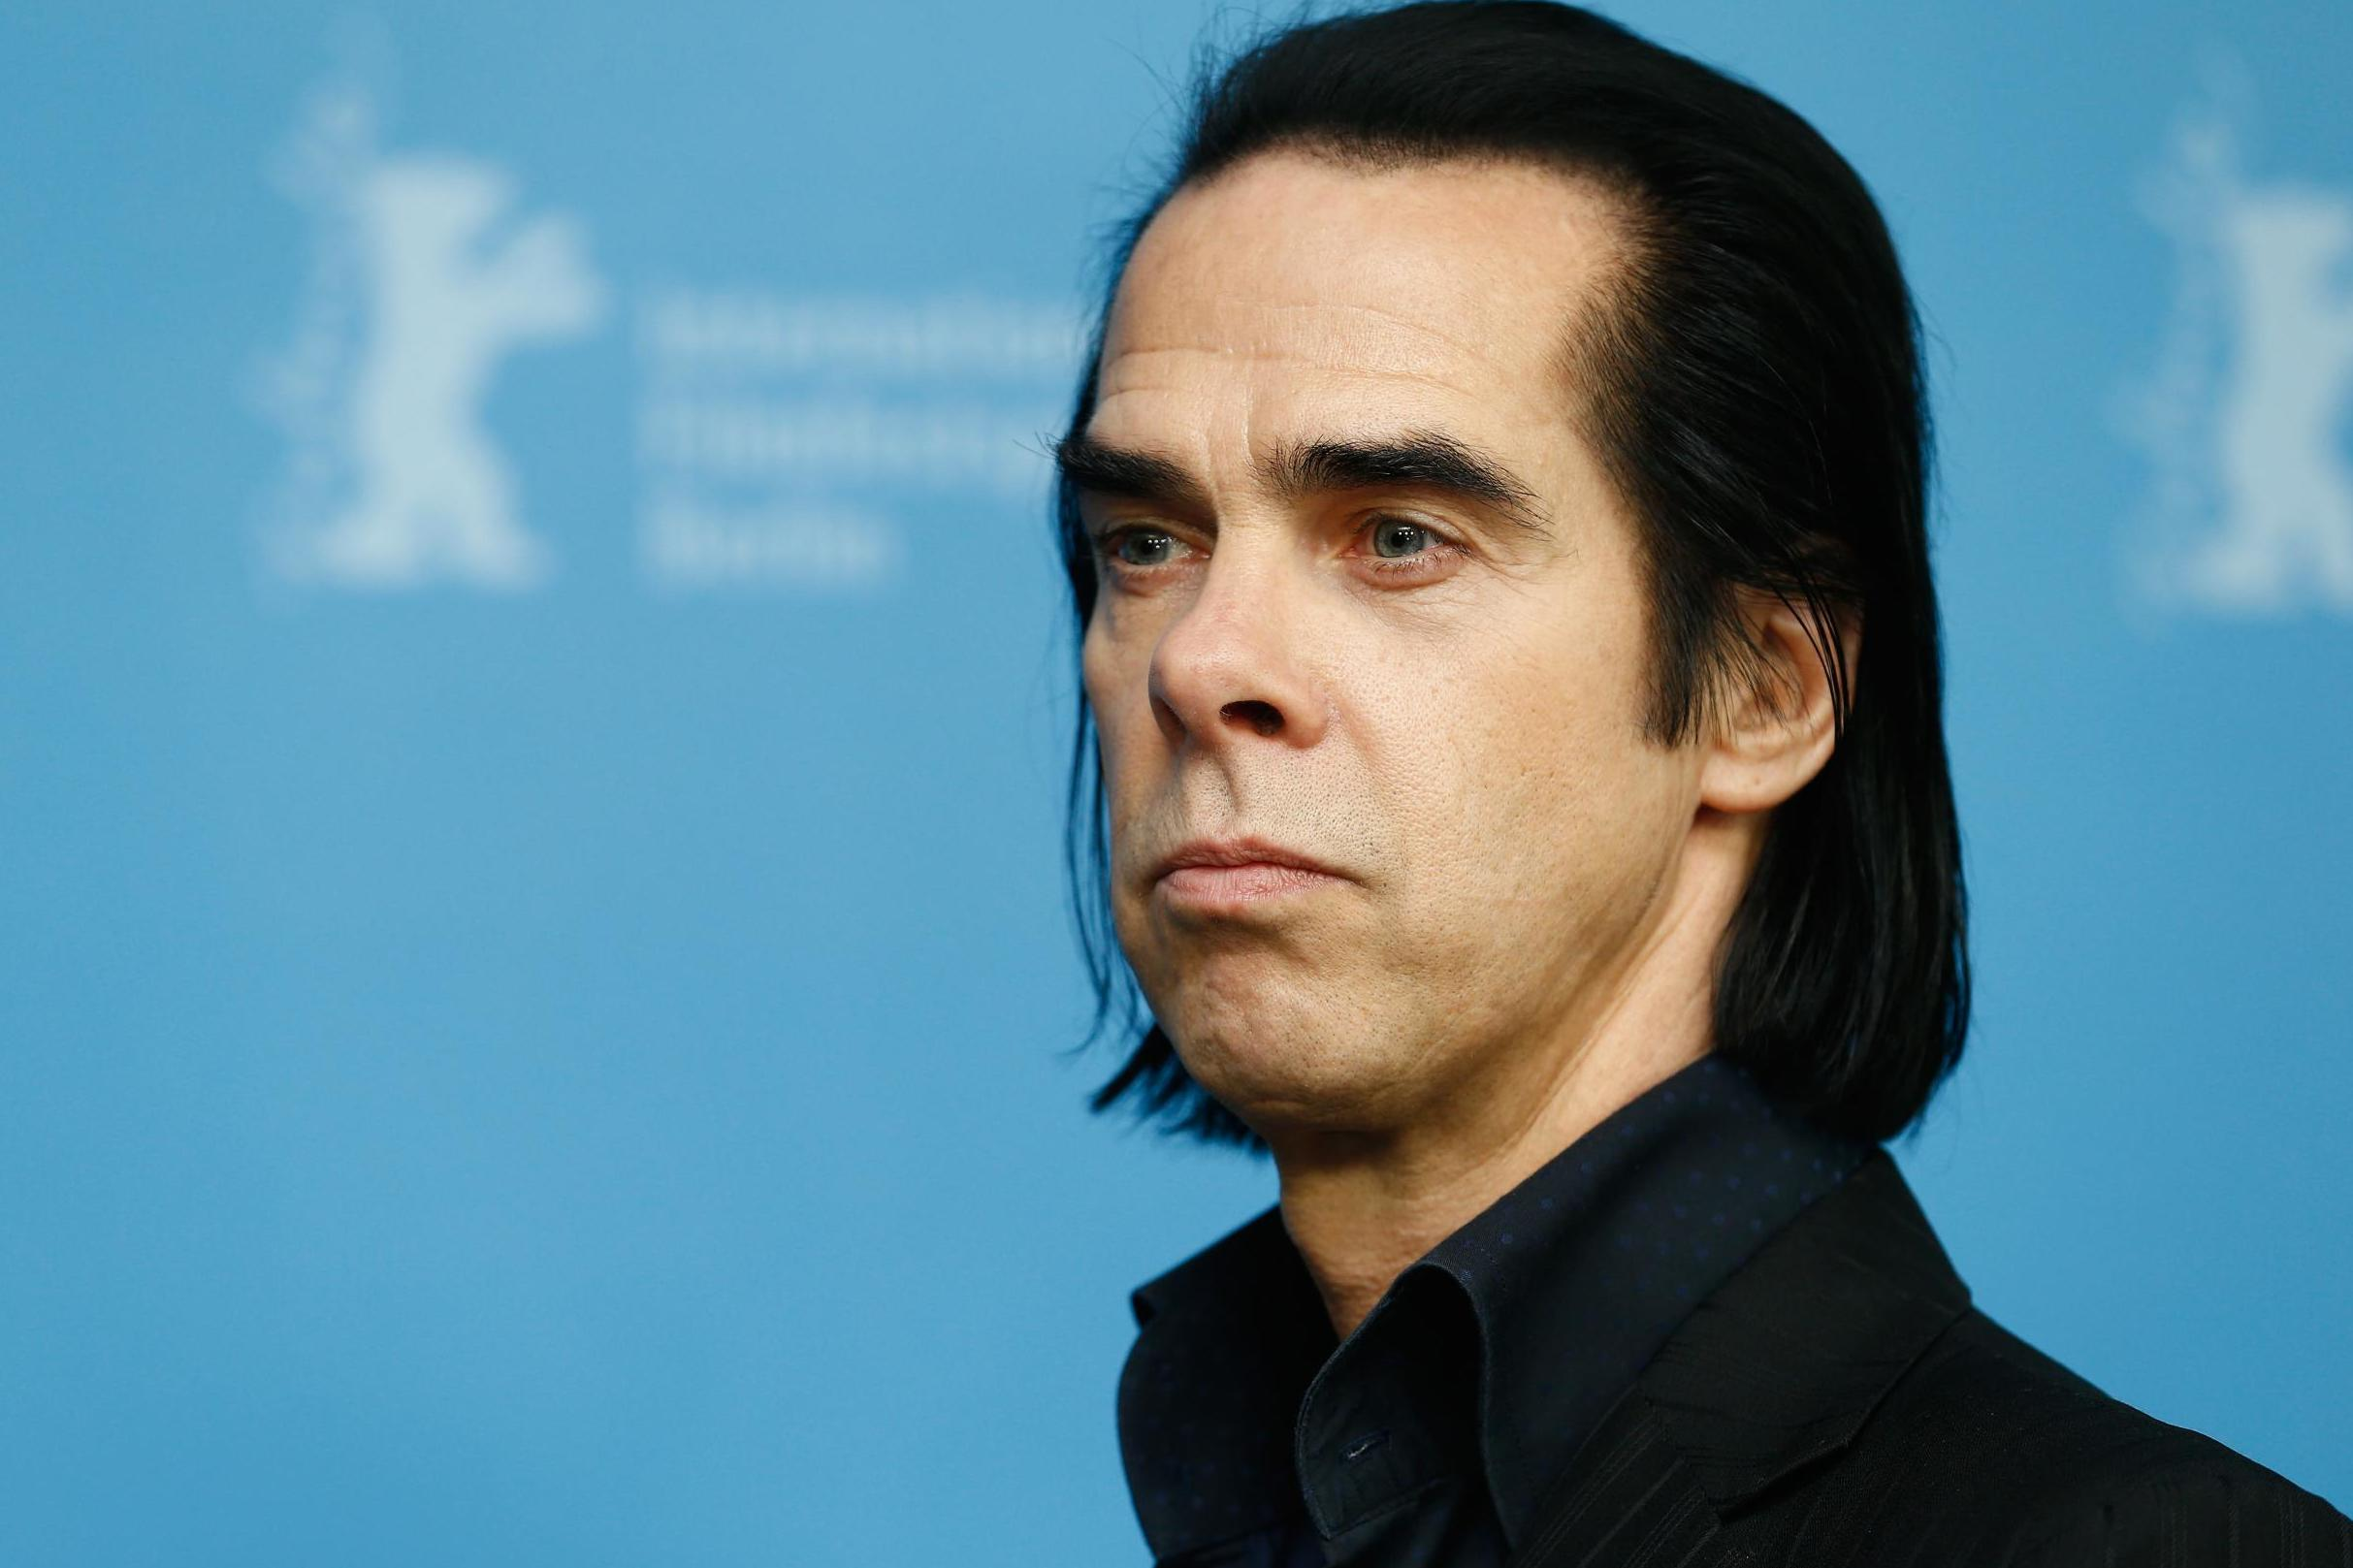 Nick Cave gives unused song lyrics to fan with 'serious